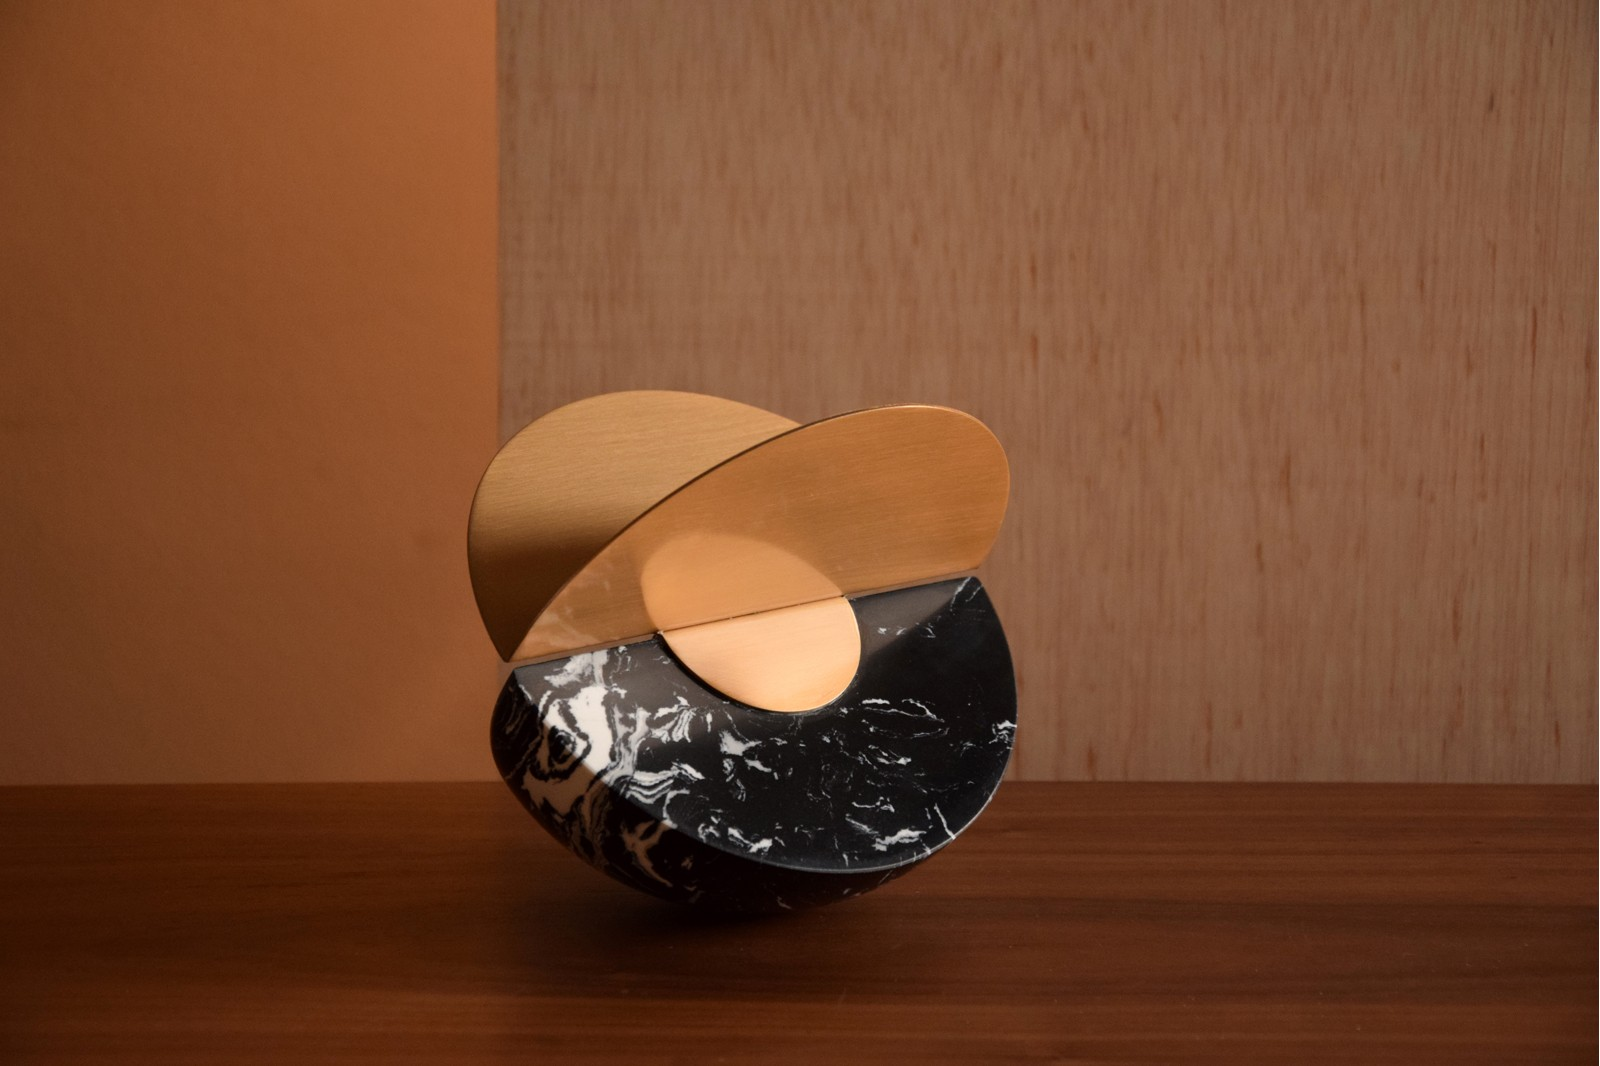 SPHERE COLLECTION. BLACK MARBLE AND METAL SCULPTURE